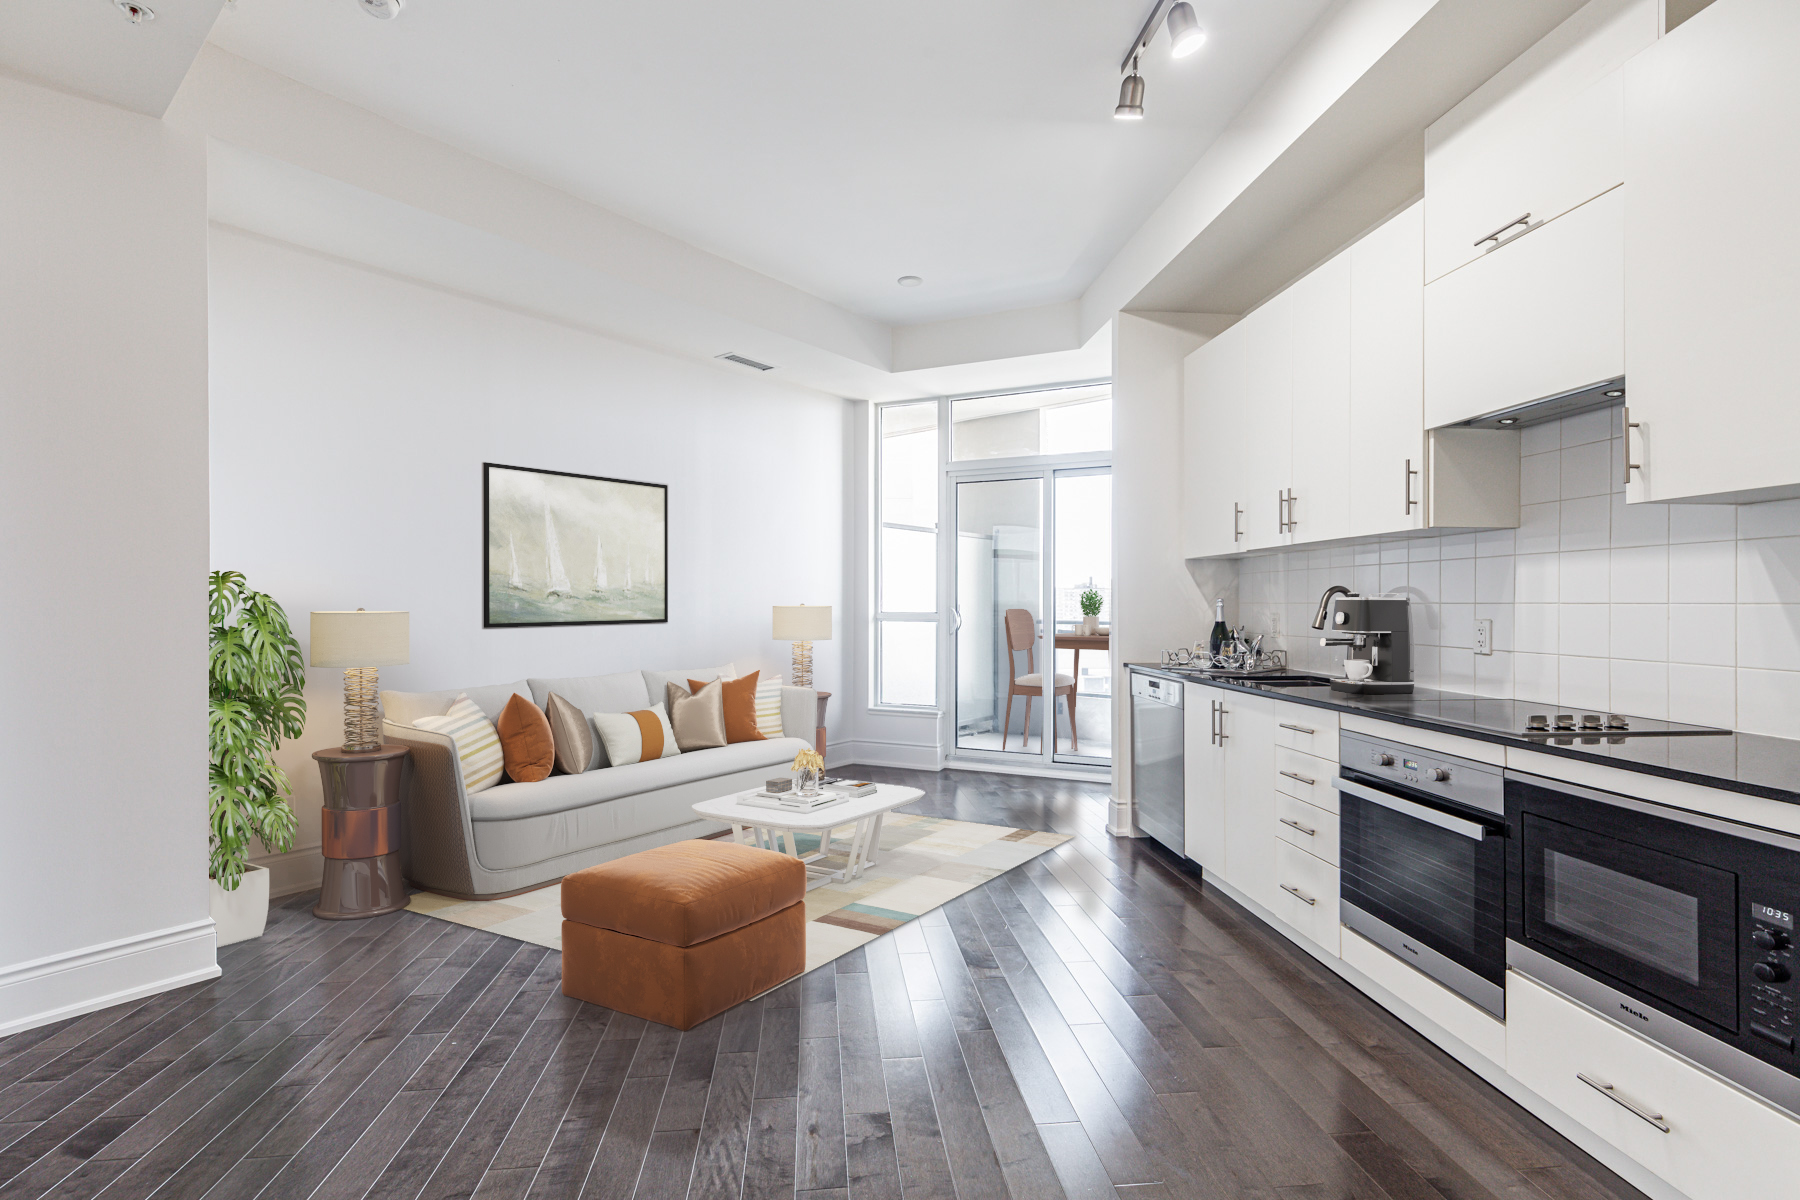 Open-concept condo with view of living, dining and kitchen areas.